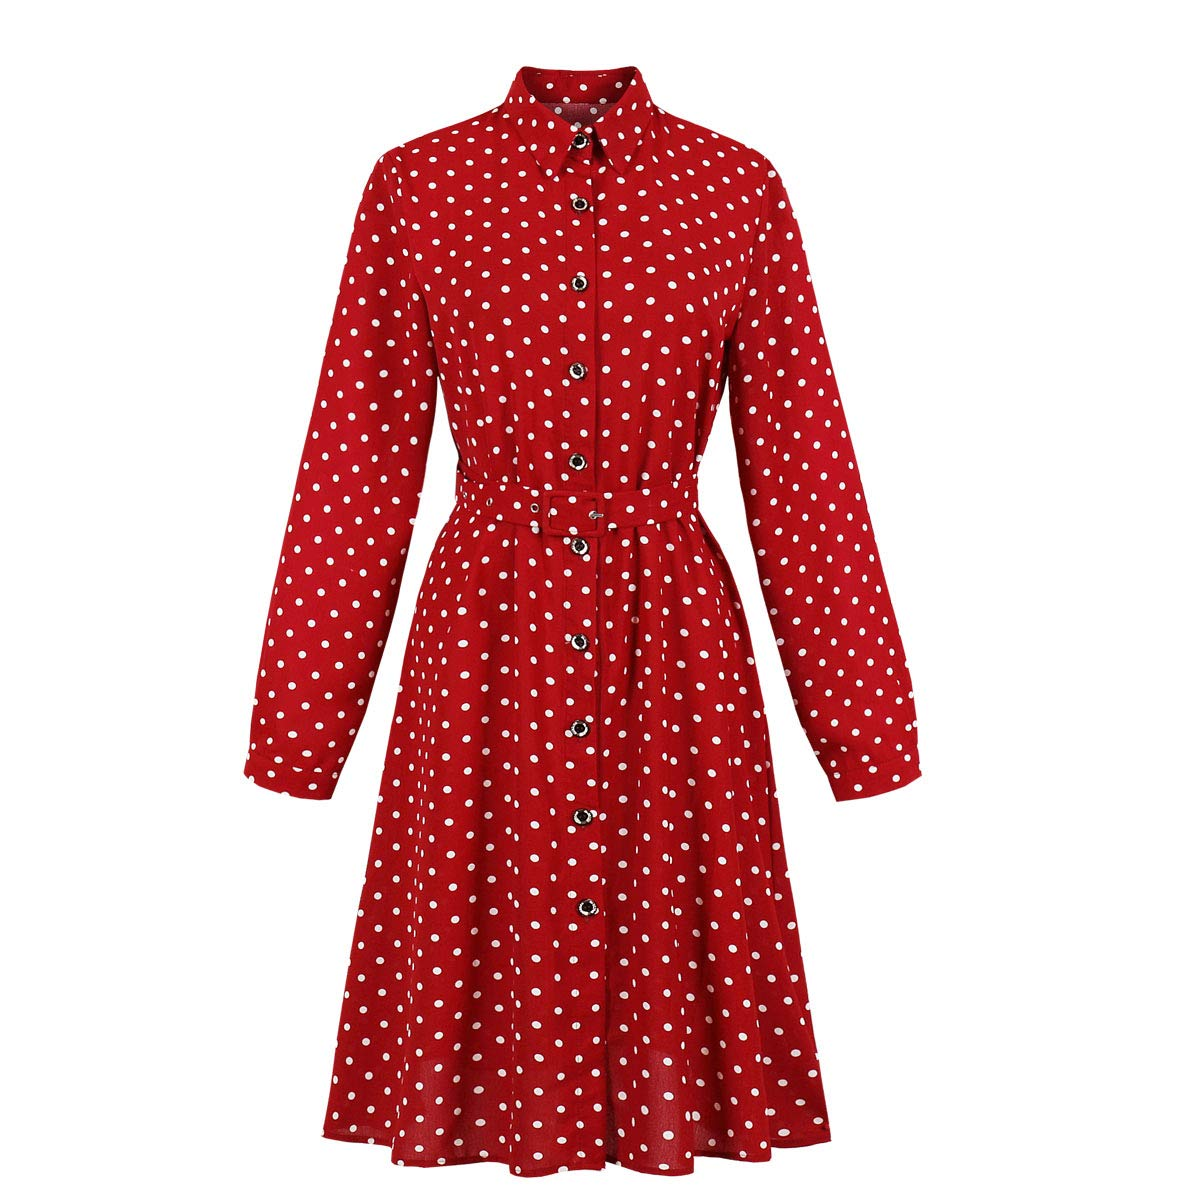 500 Vintage Style Dresses for Sale | Vintage Inspired Dresses Wellwits Womens Long Sleeves Polka Dots Button Down Vintage Shirt Dress $21.98 AT vintagedancer.com